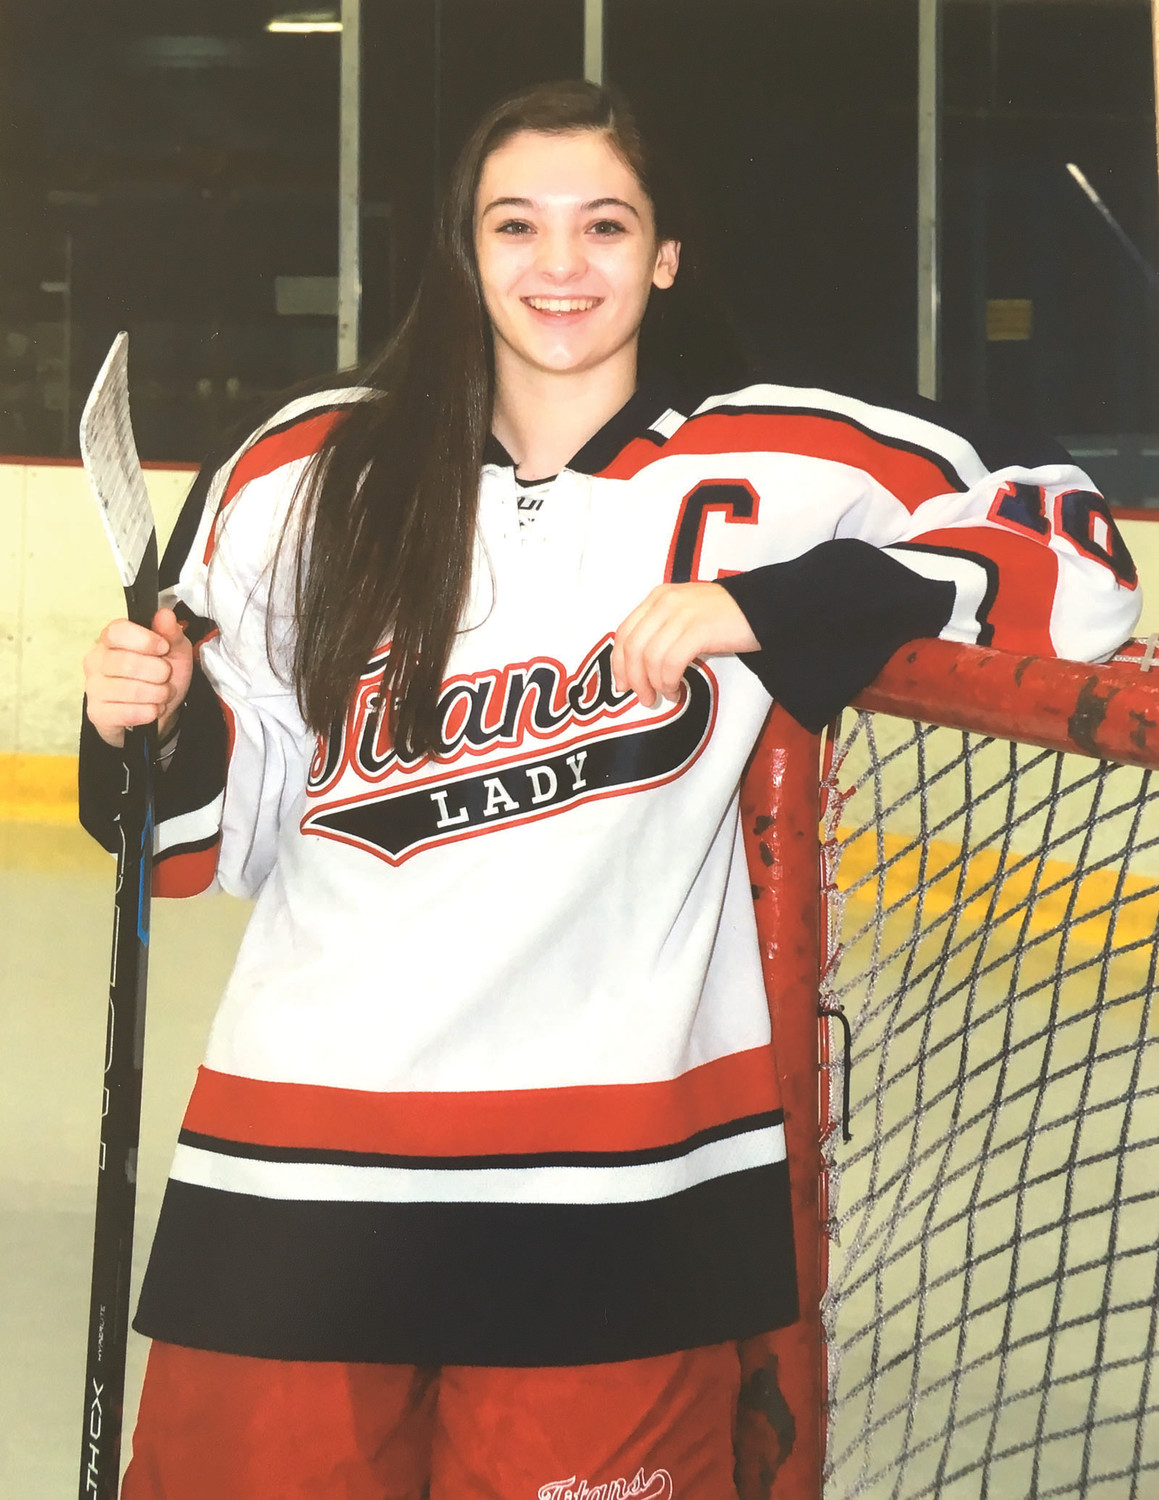 SUPER SHANNON: Warwick's Shannon McCammish stands beside a hockey goal yet she was selected for the RI Reds Heritage Society's Gil Mayer Award for her defensive prowess and untiring leadership and training skills that helped her teammates.